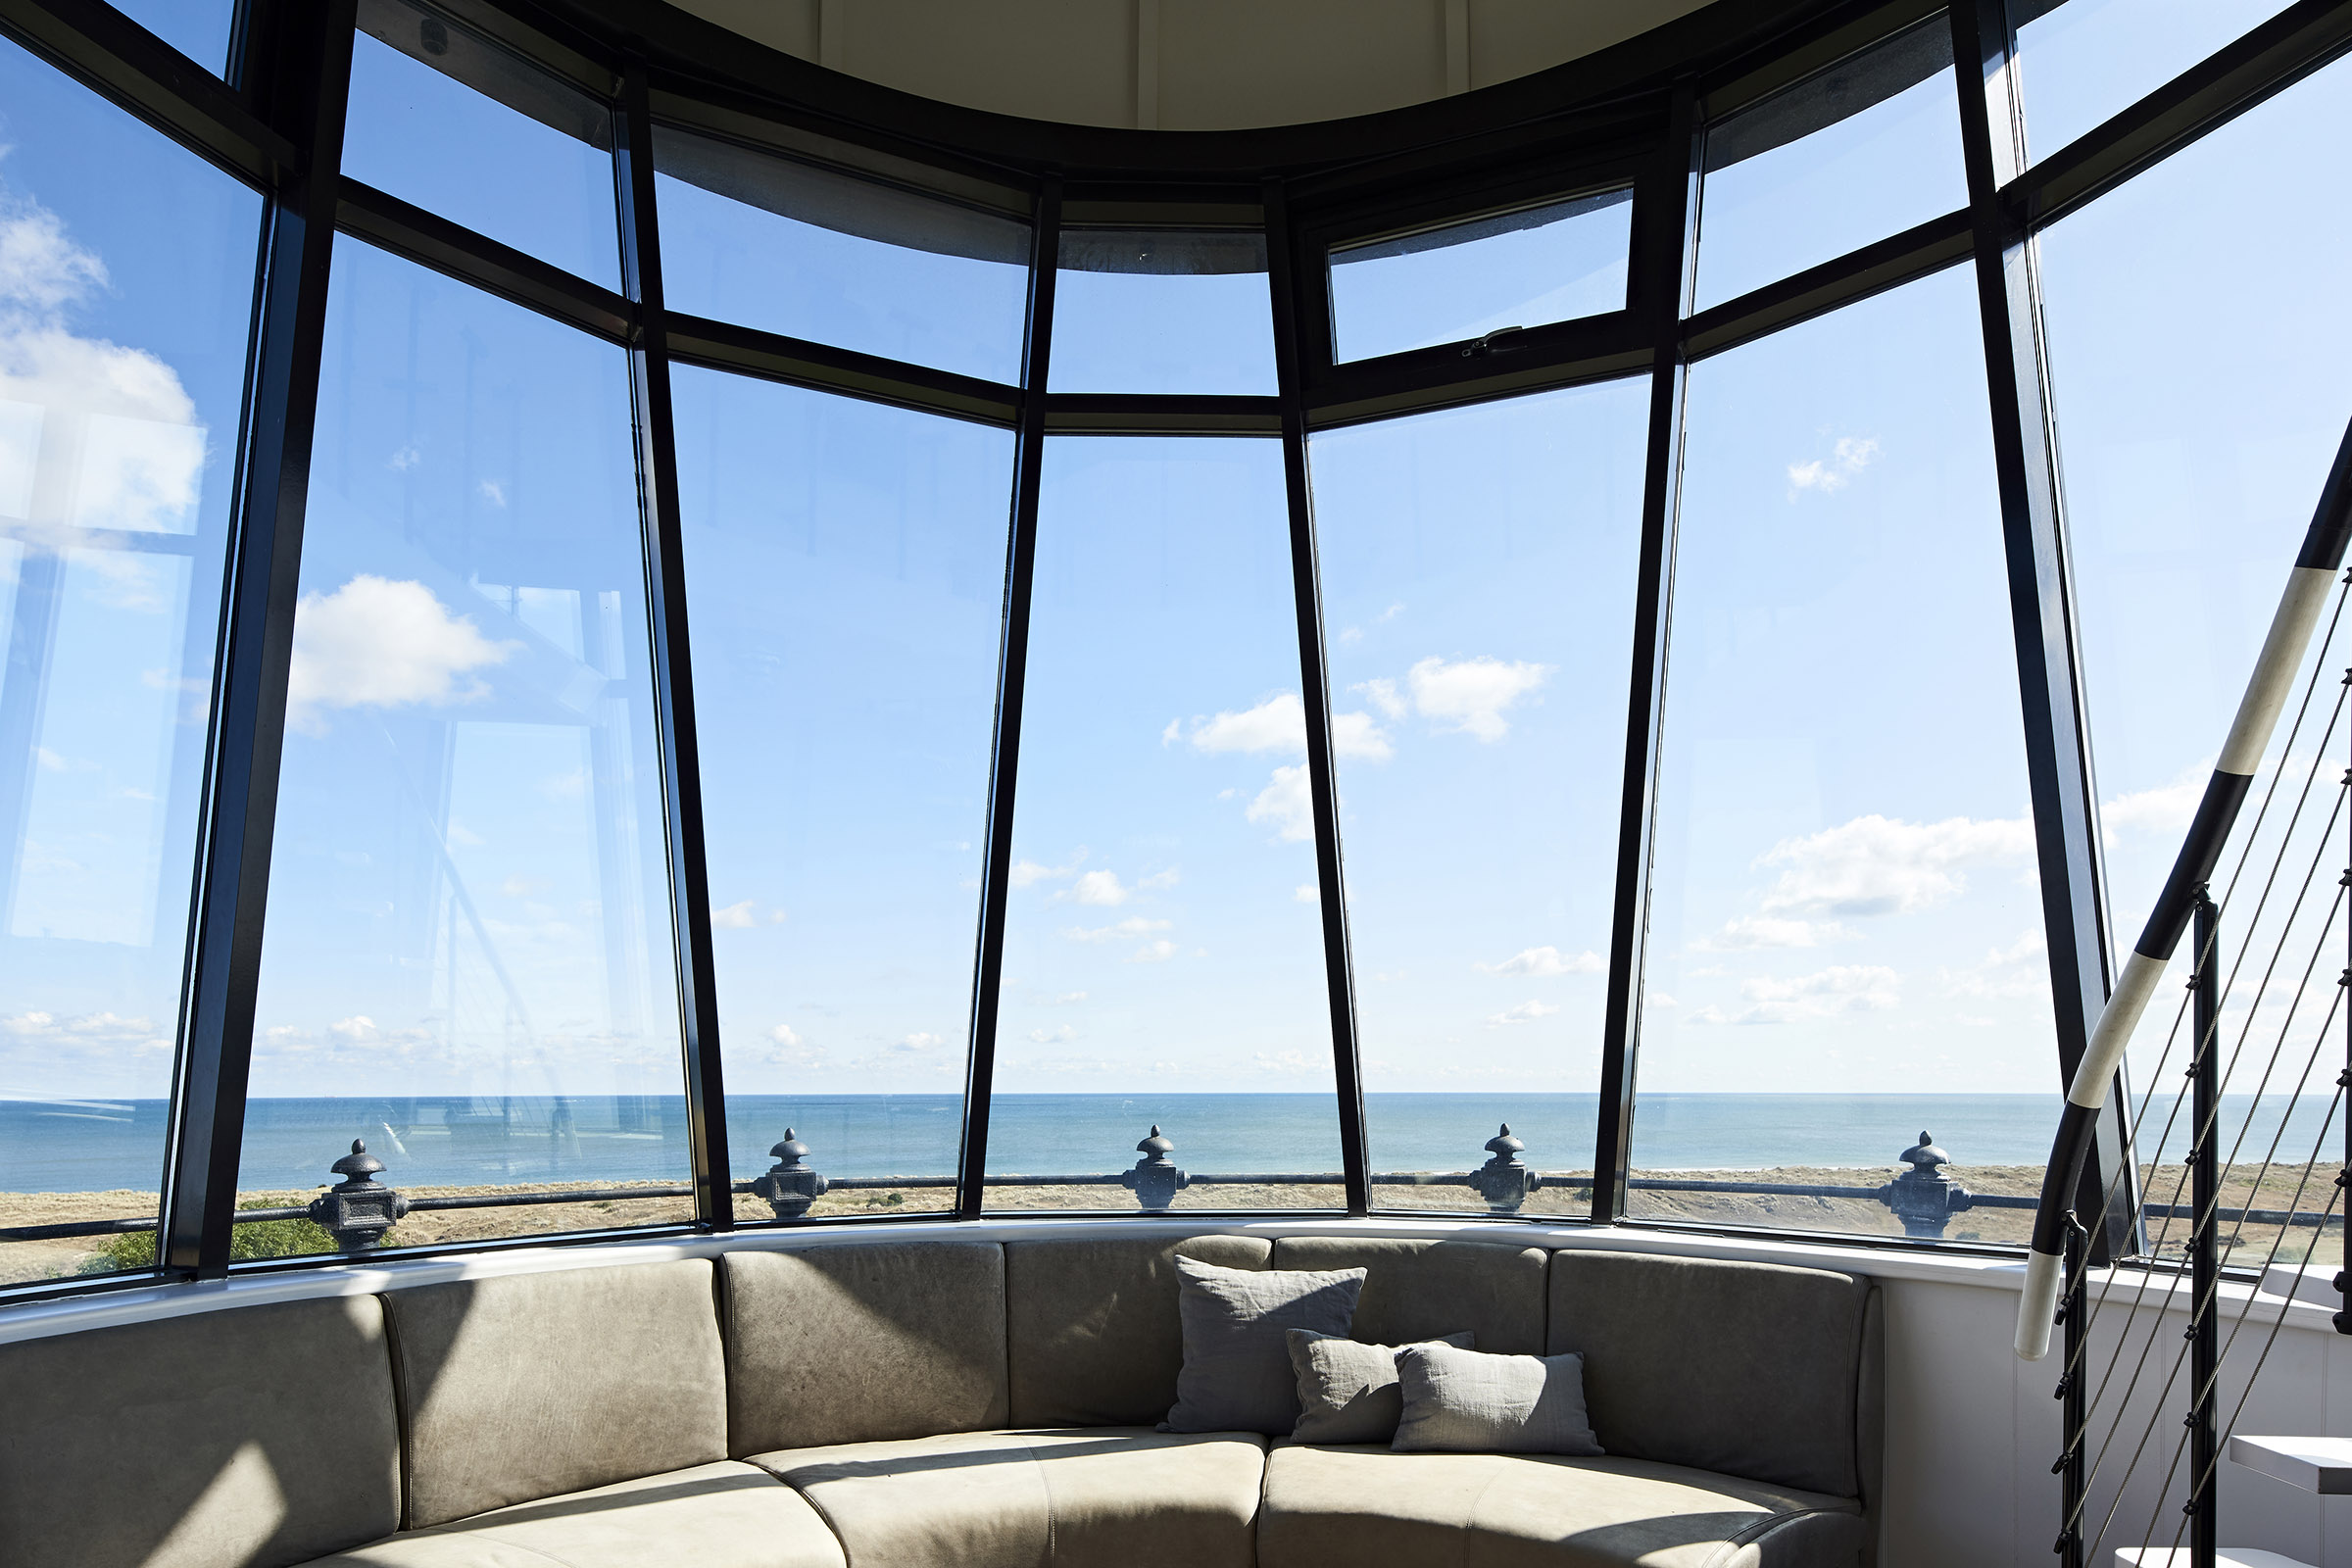 The Lantern Room overlooks the sea.